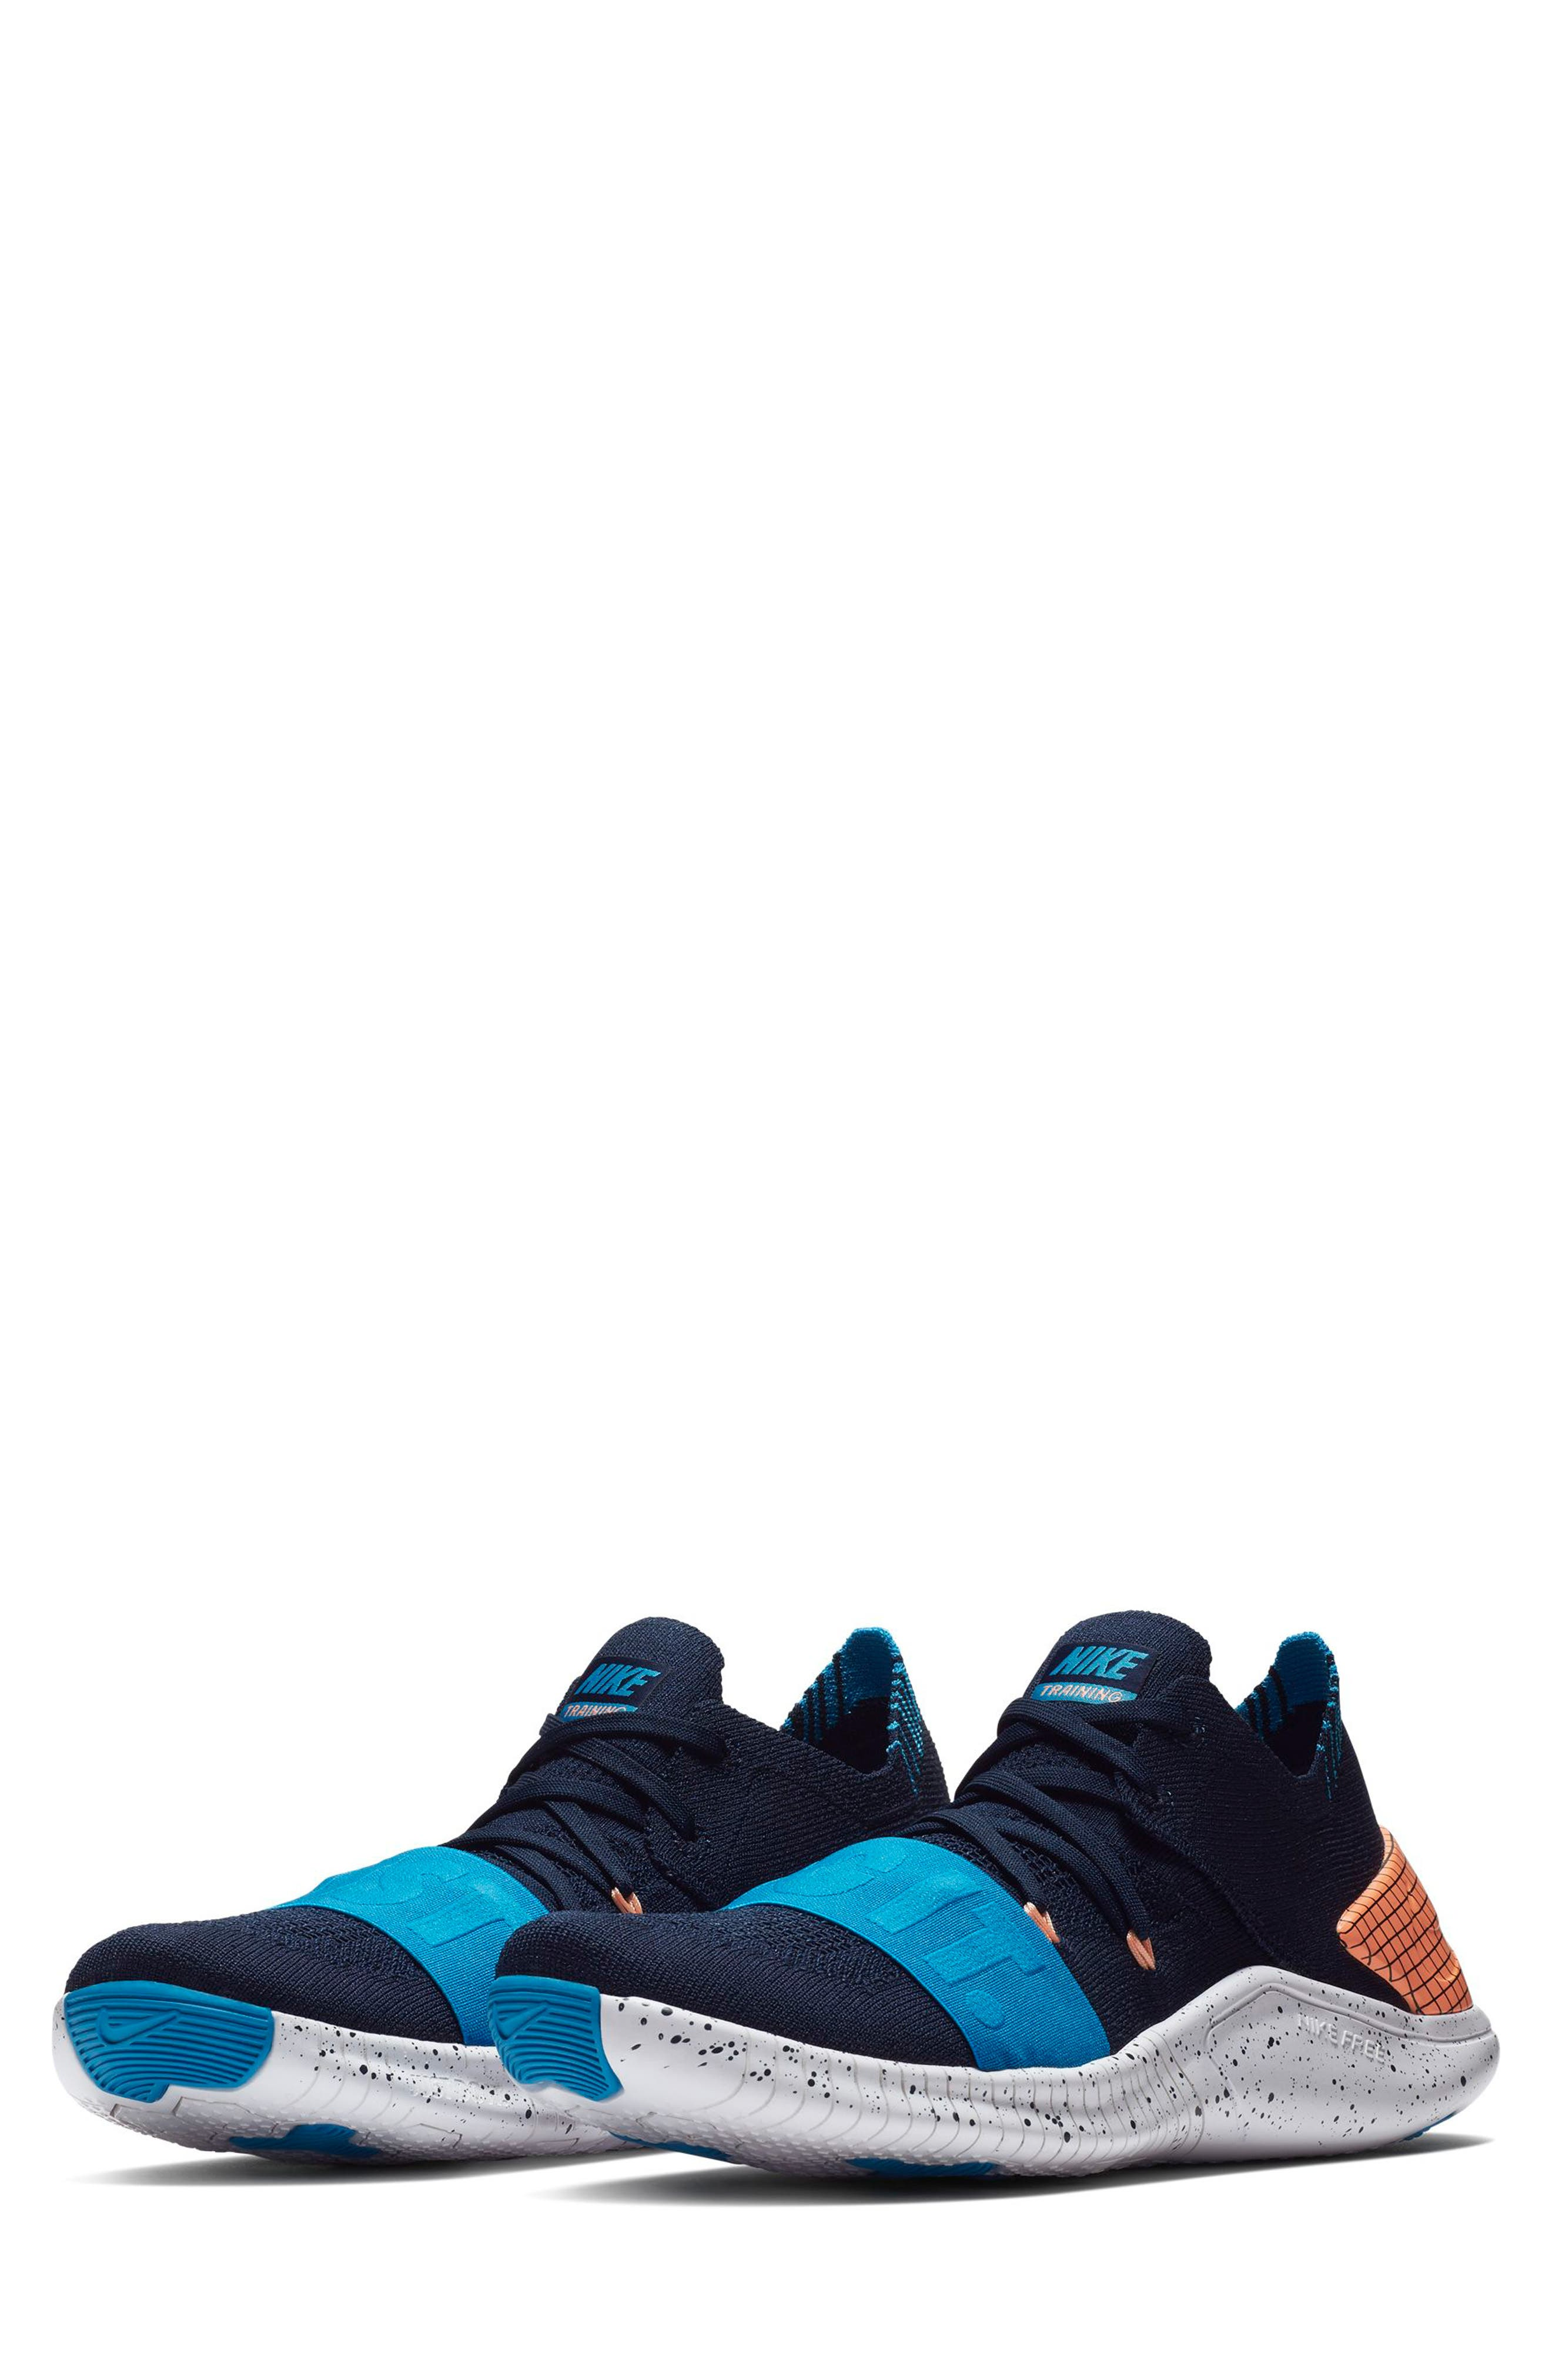 Free TR Flyknit 3 NEO Training Shoe,                             Main thumbnail 1, color,                             408